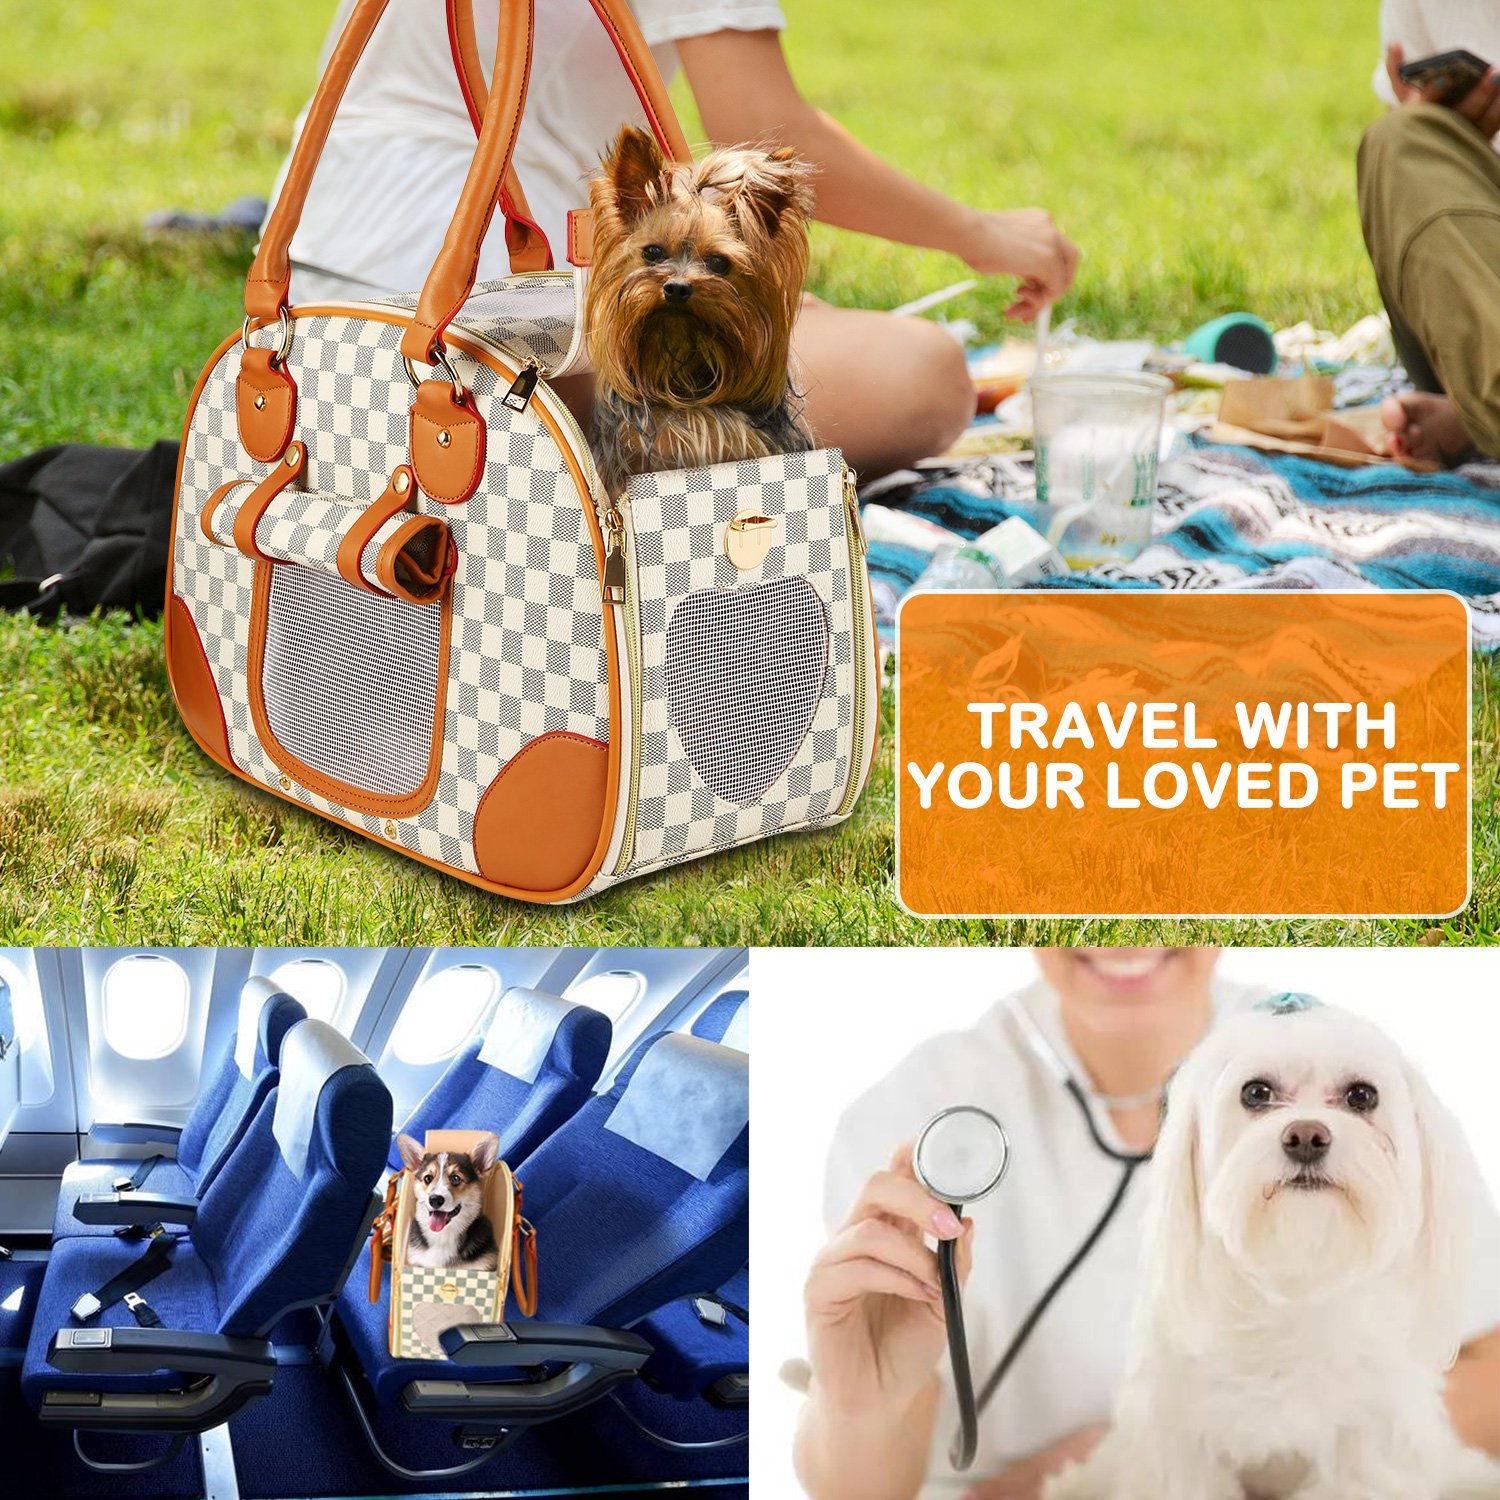 wot i Soft Sided Pet Carrier, Cat Carrier Dog Carrier Airline Approved Pet Carrier Suitable for Small Dogs and Cats, Medium Cats and Dogs, Puppy, Kittens, Small Animals, Luxury PU Leather Travel Bag by wot i (Image #6)